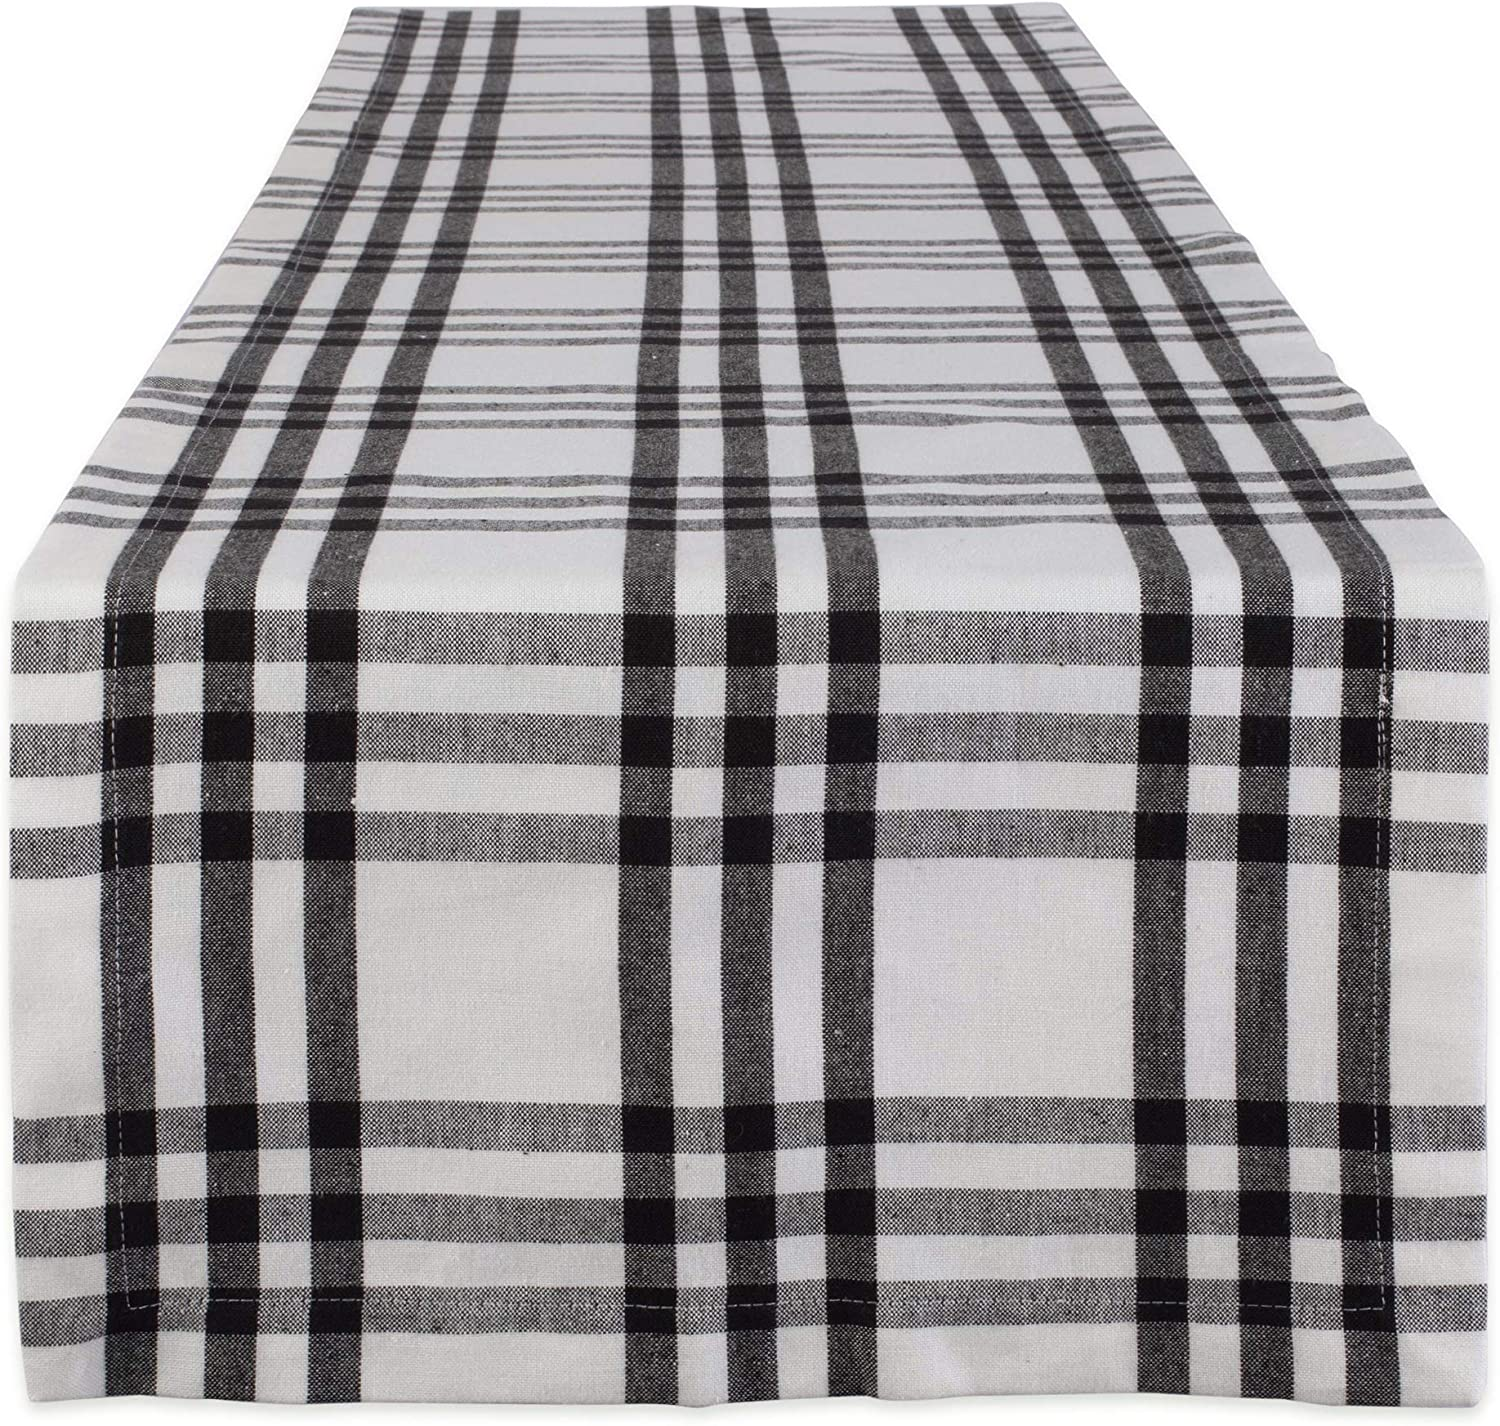 DII Home Sweet Farmhouse Table Top Collection Stylish Décor for Family, Dinner Parties, Weddings & Everyday Use, Runner, 14 x 72, Black Plaid